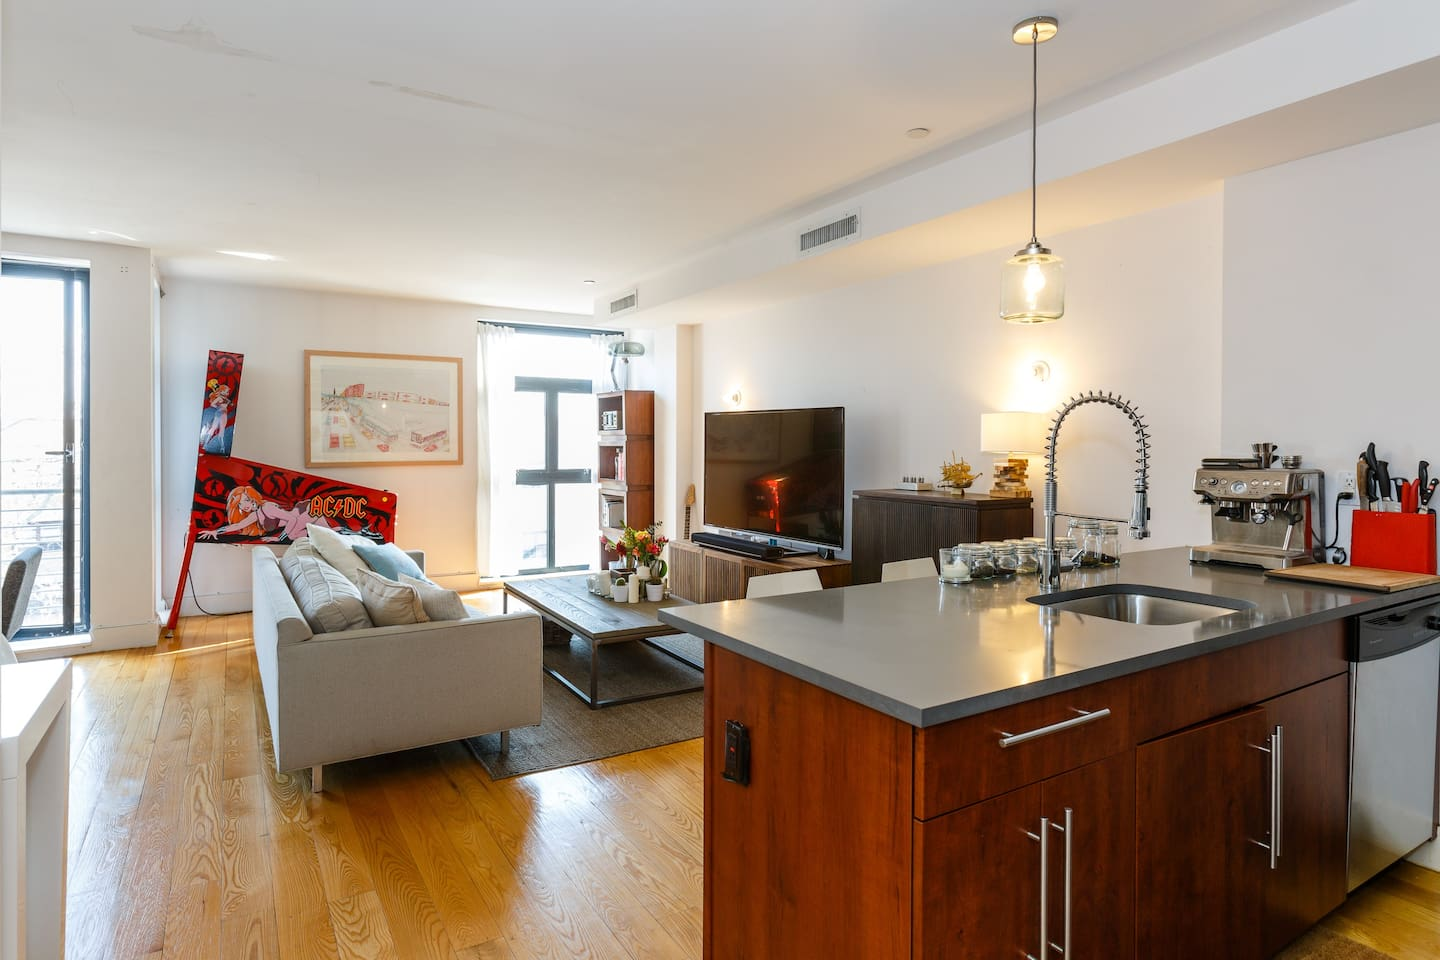 """The apartment is very large by NYC standards.  Mary reviews: """"What a wonderfully pleasant surprise! Accommodations exactly as pictured and described. Neat as a pin, spacious, and plenty of privacy. """""""